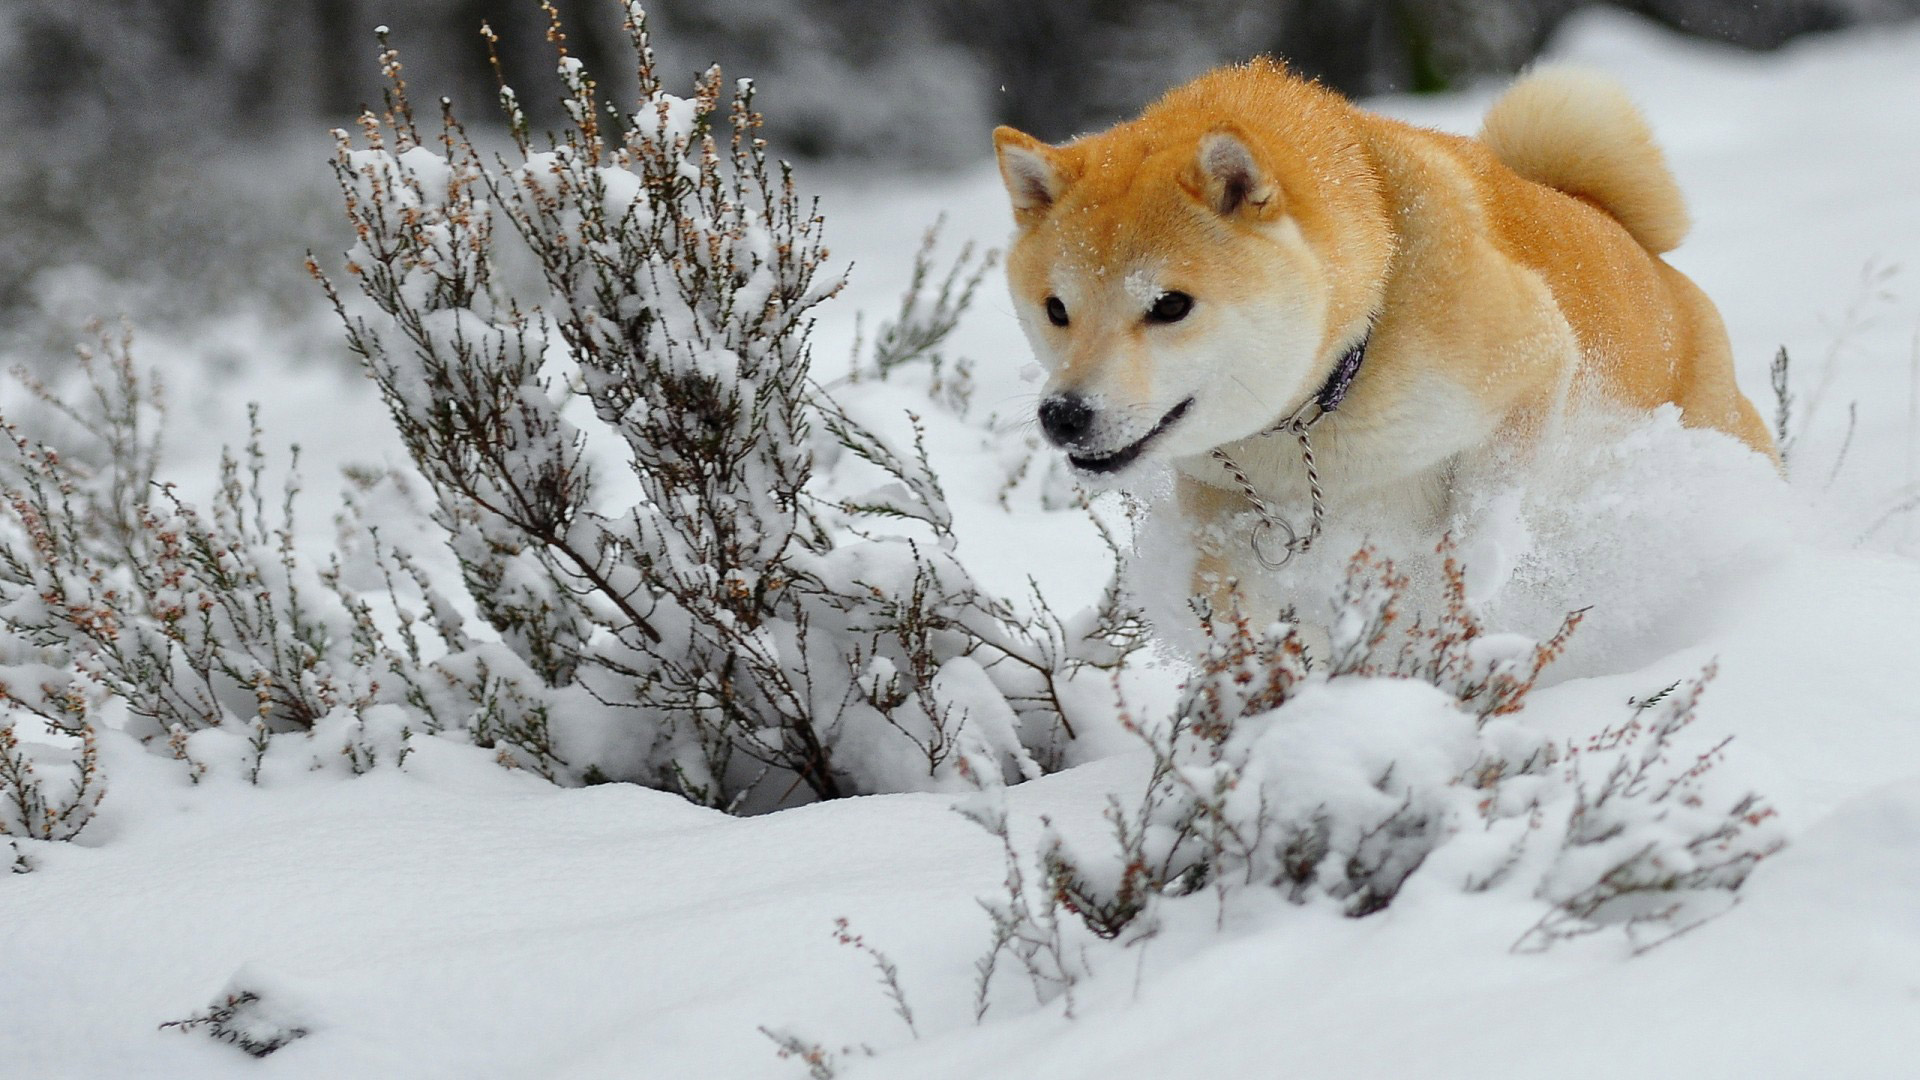 beautiful-dog-running-in-the-snow-wallpaper-wpc9002692